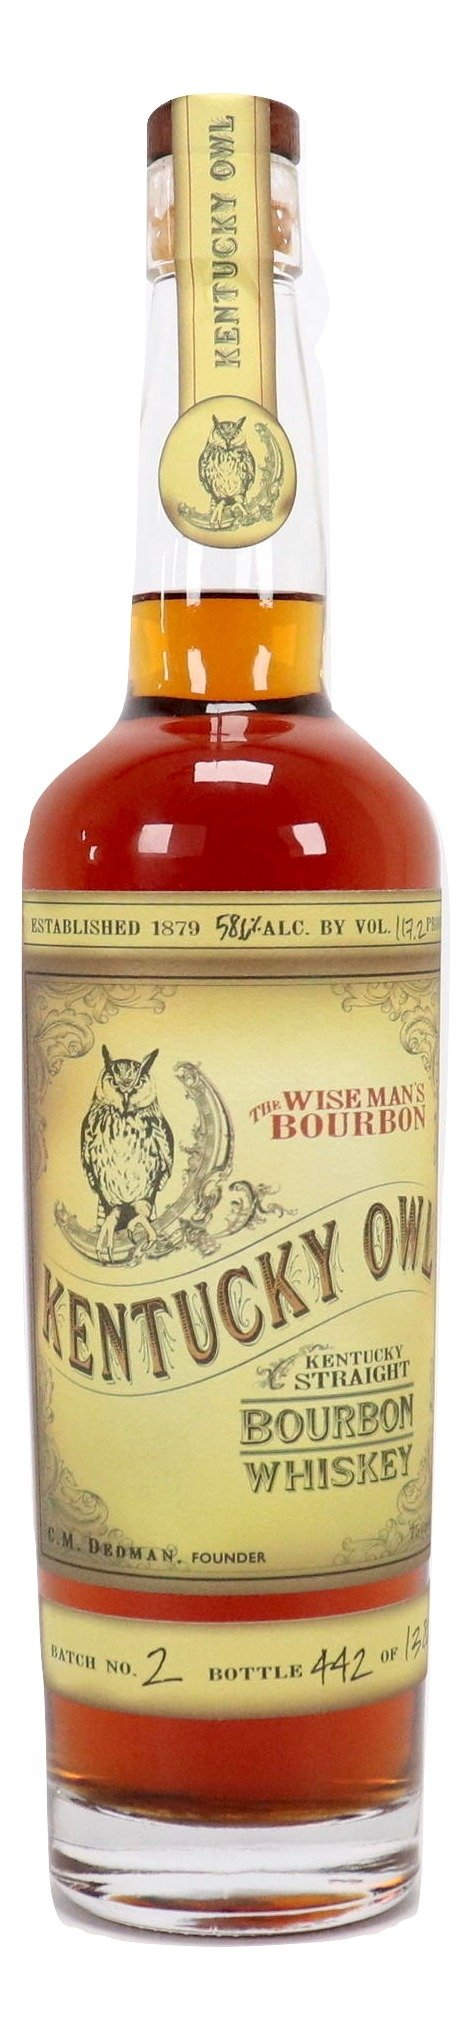 Kentucky Owl Bourbon Batch 2 For Sale - NativeSpiritsOnline